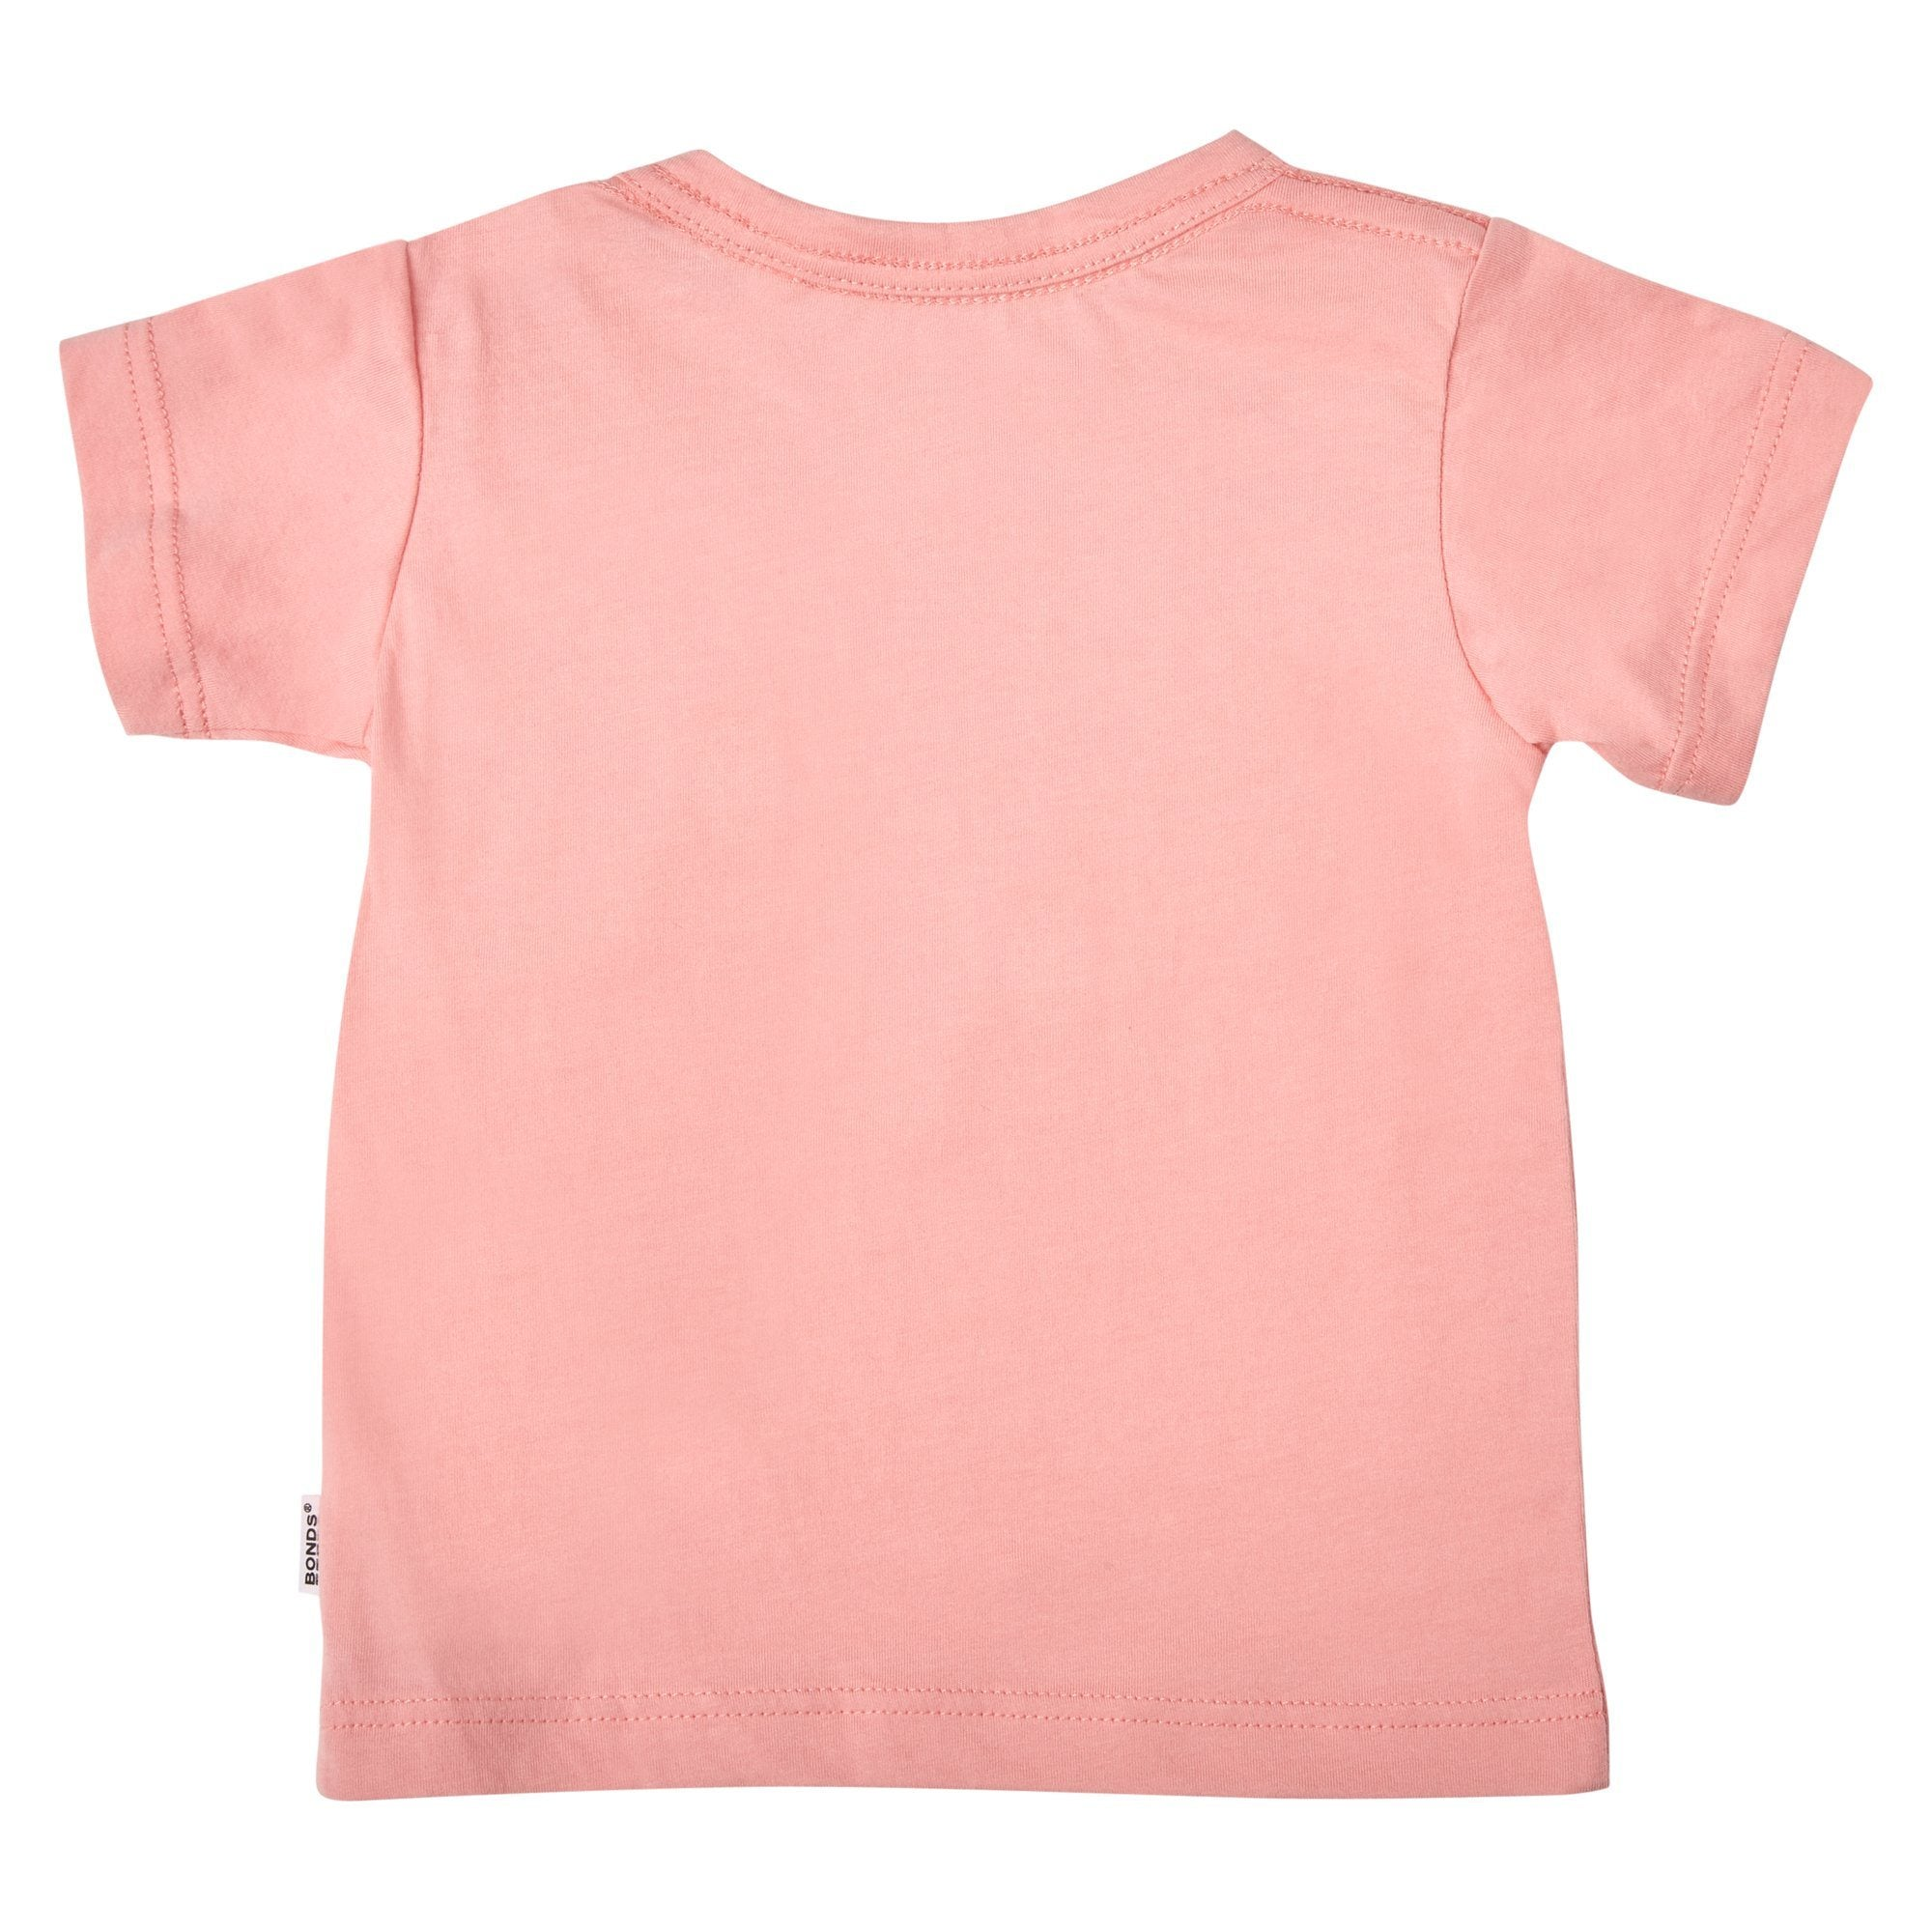 Bonds Baby Aussie Cotton Tee Pink Baby Isbister & Co Wholesale